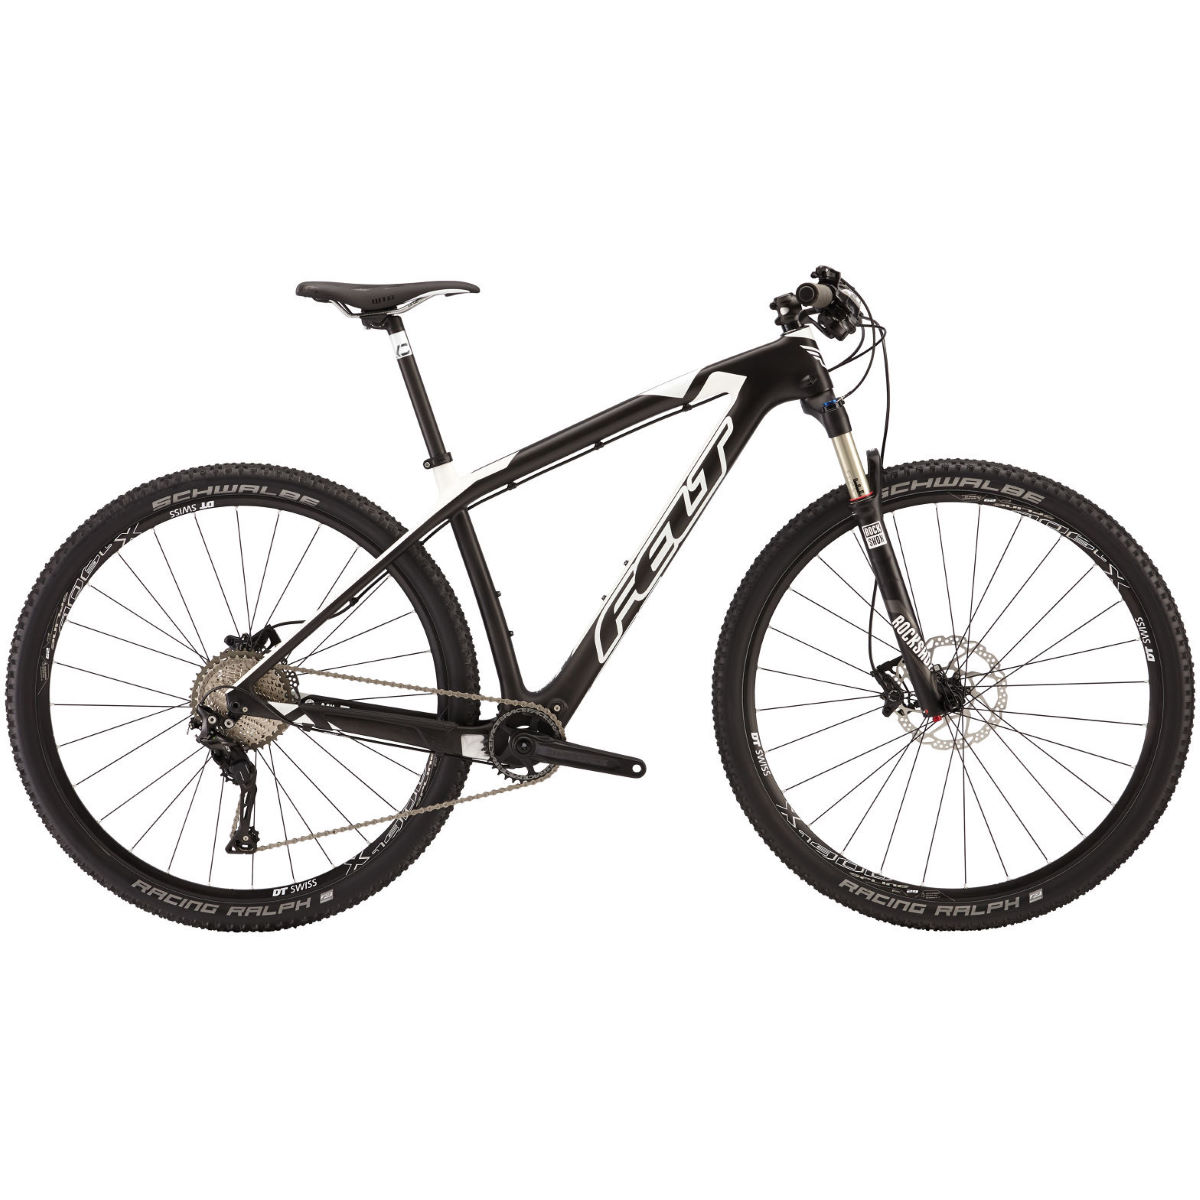 VTT Felt Nine 2 (2016) - 14'' Carbon/White VTT semi-rigides